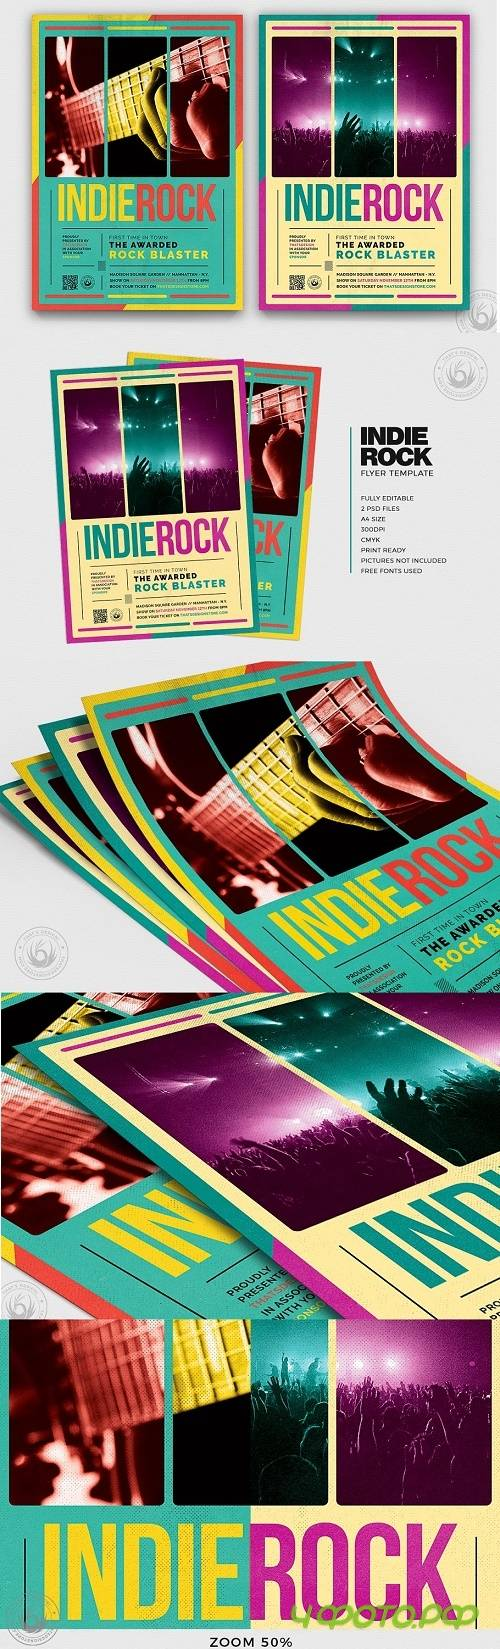 Indie Rock Flyer Template V2 - 3604771